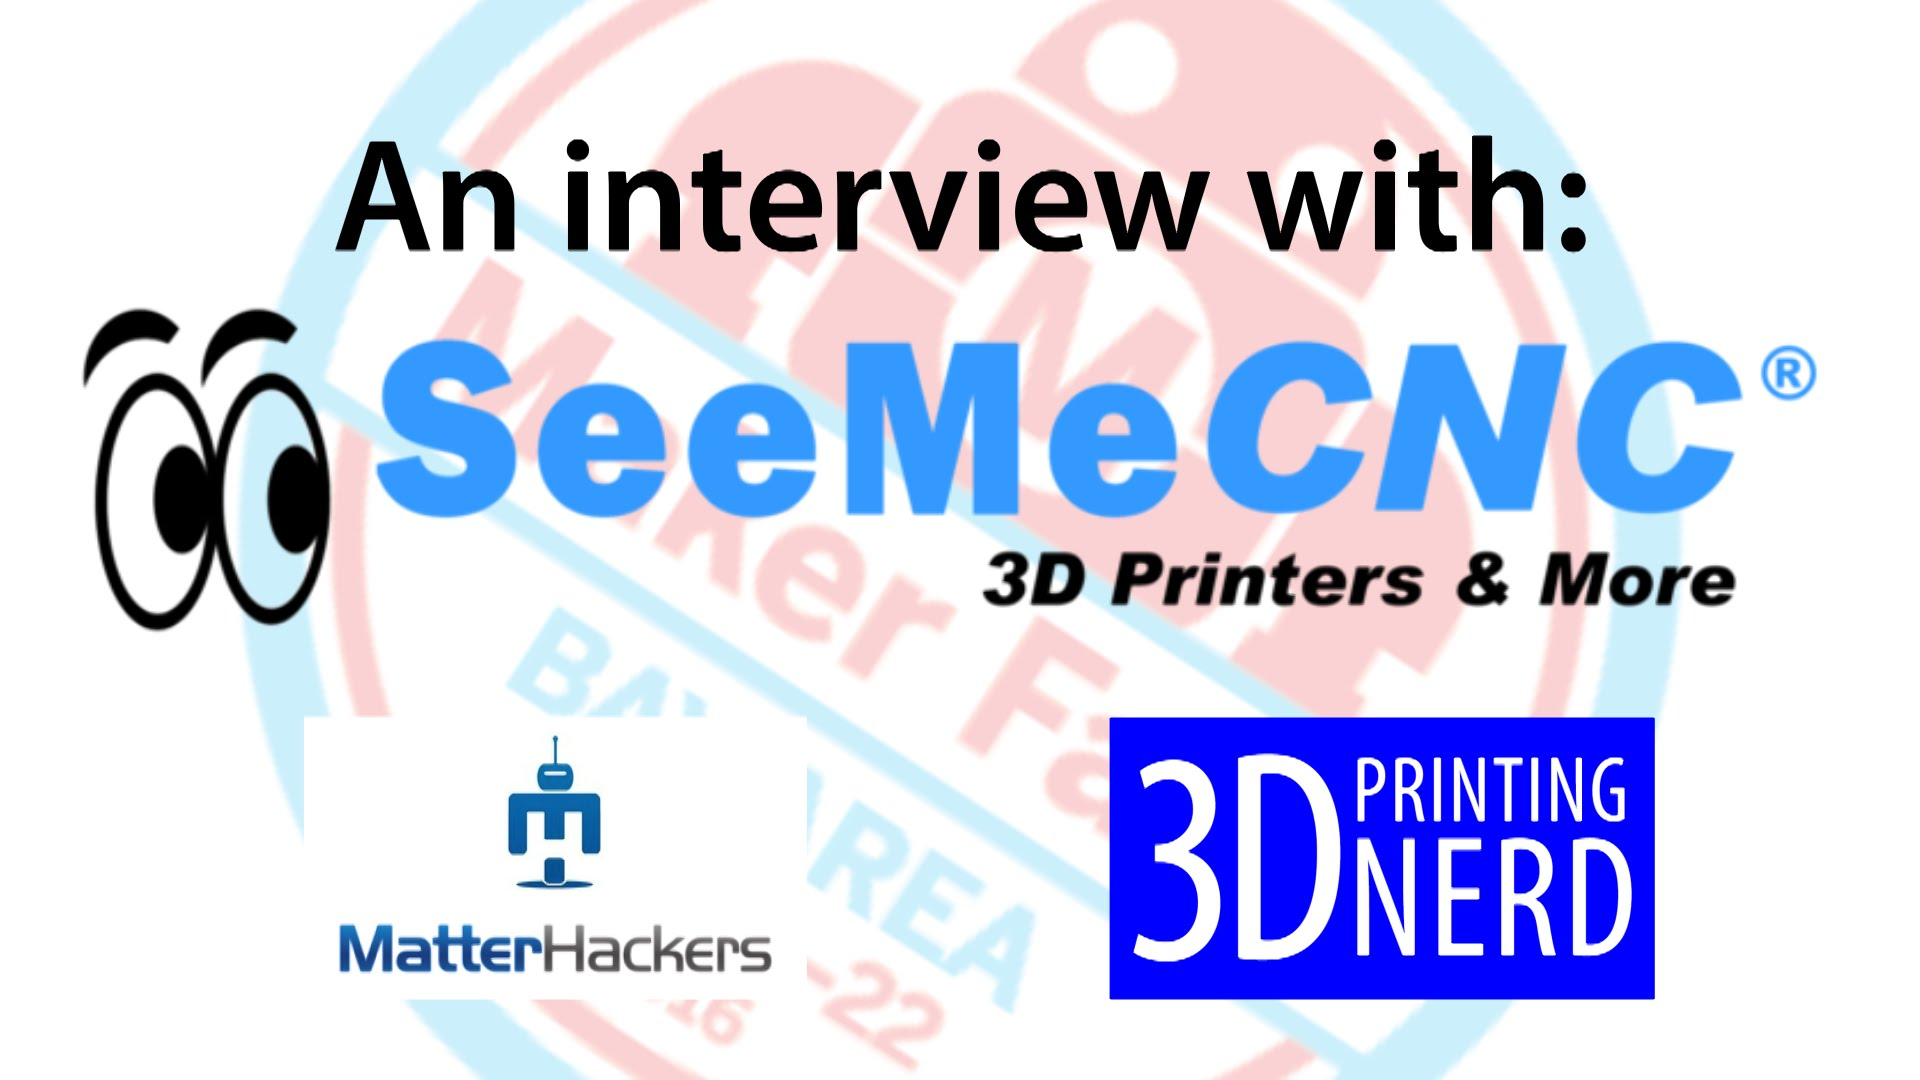 3D Printing: SeeMeCNC at Maker Faire 2016 #amazing